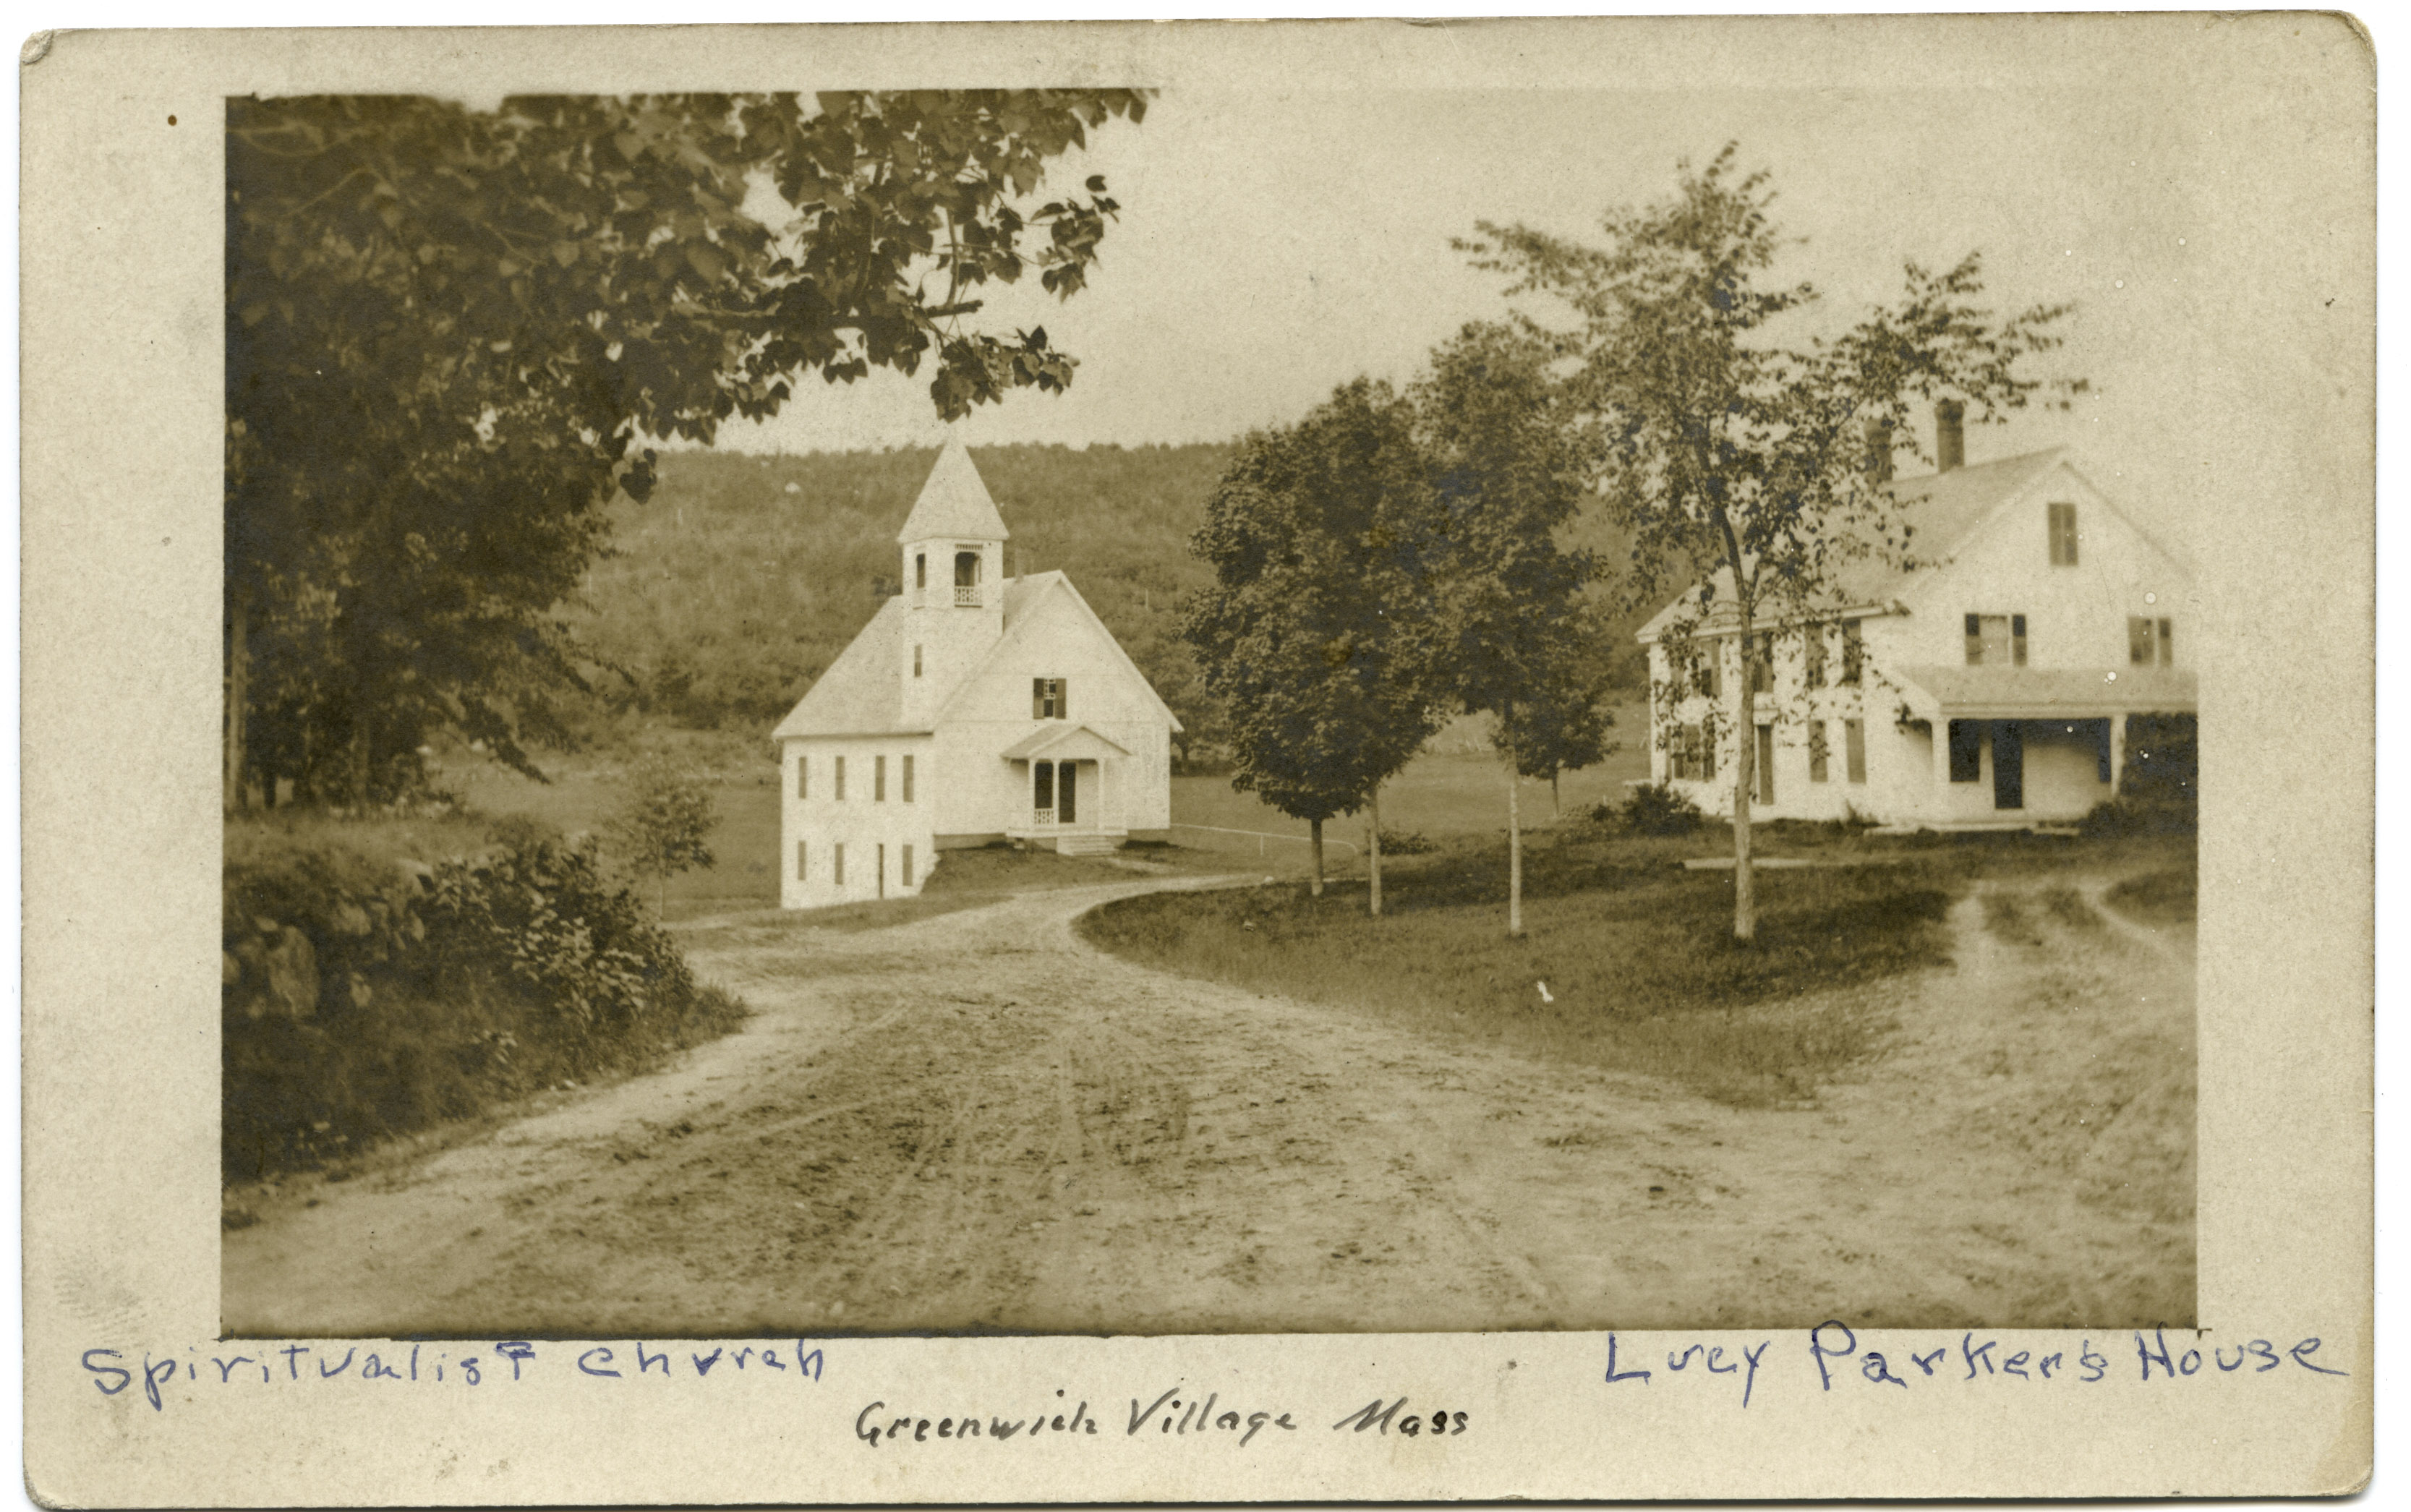 Depiction of Spiritualist Church and Lucy Parker's house, ca.1908